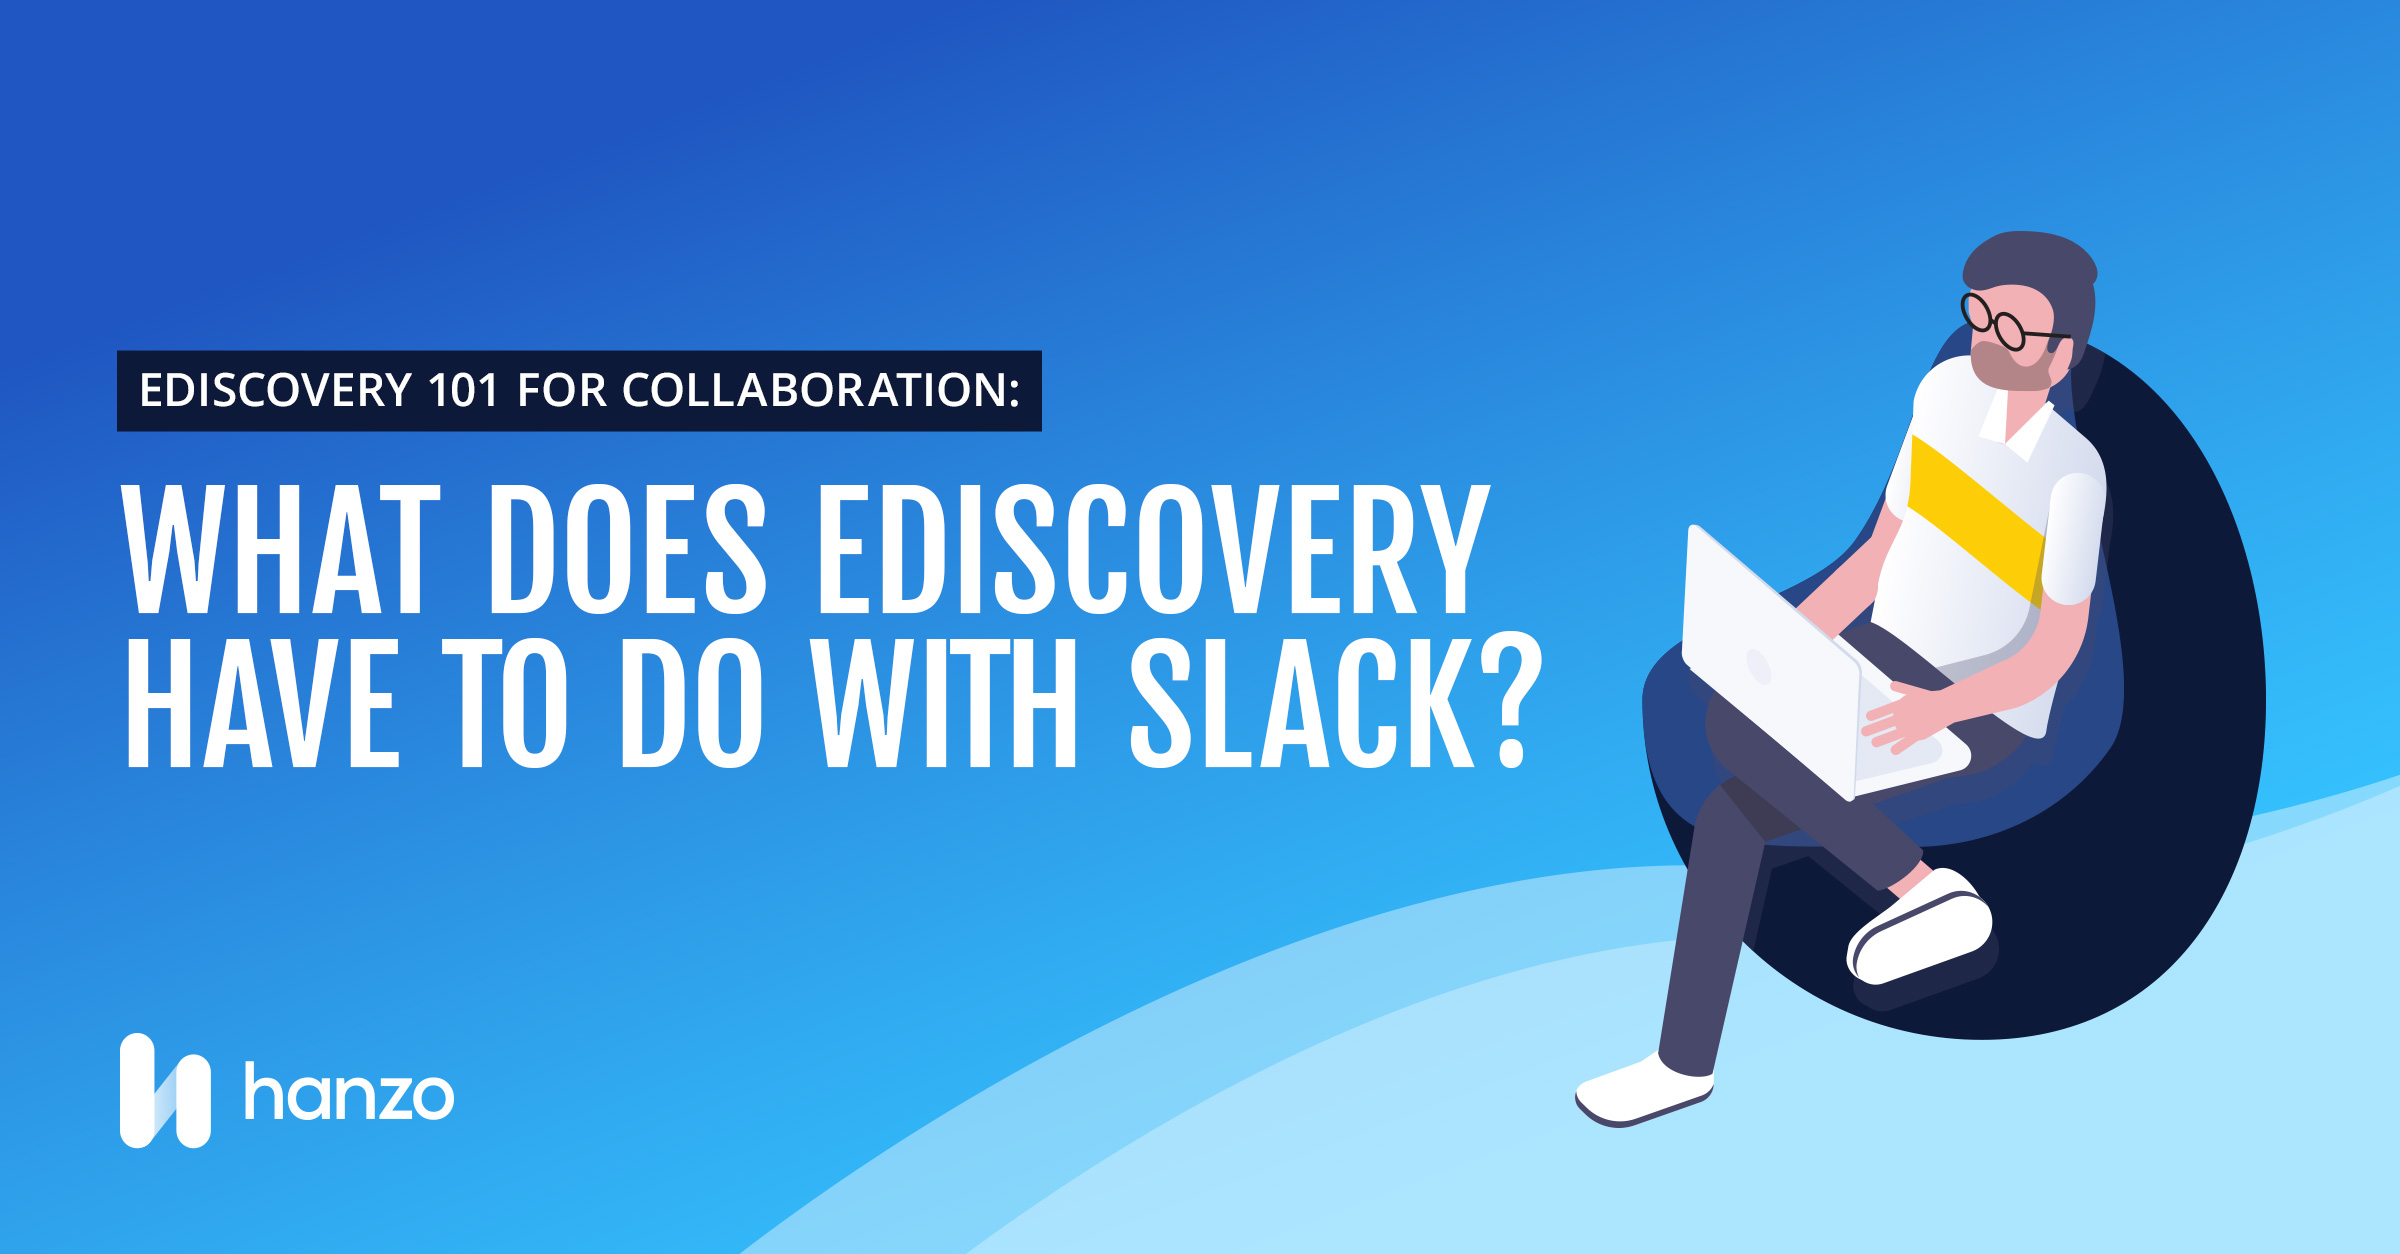 Ediscovery-101-For-Collaboration-Article2-SOCIAL-CARDS